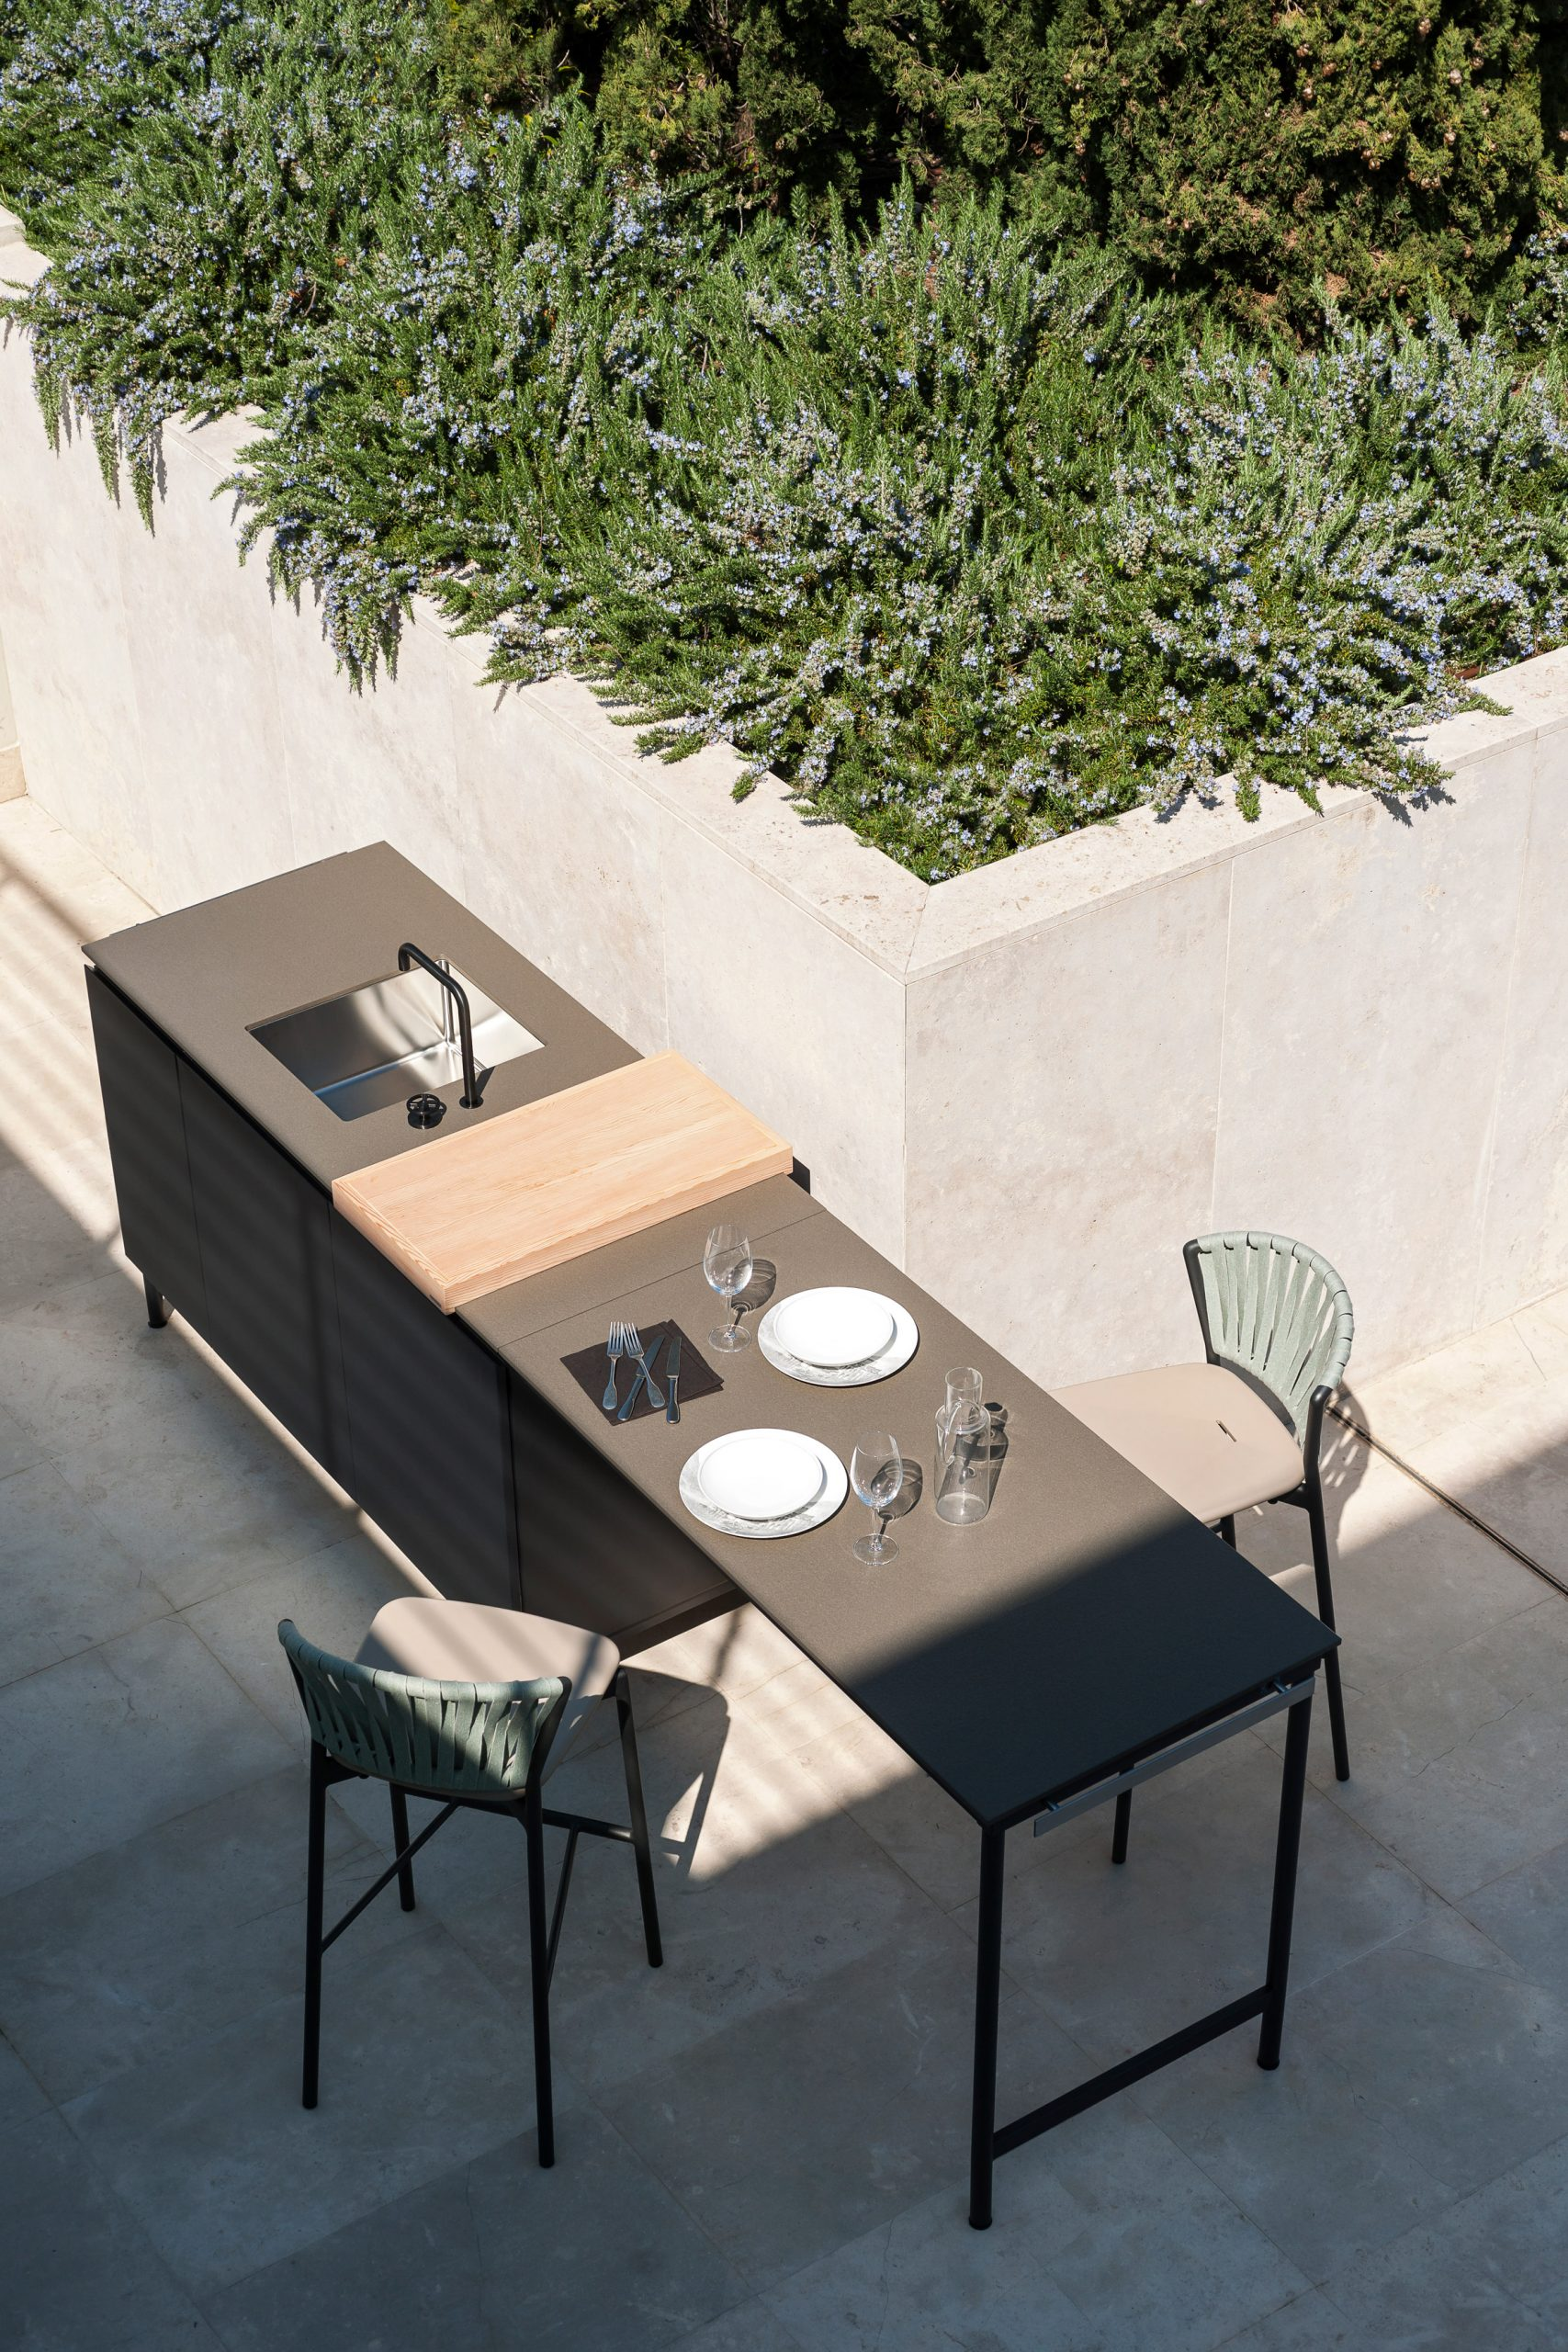 Norma outdoor kitchen with extendable table area